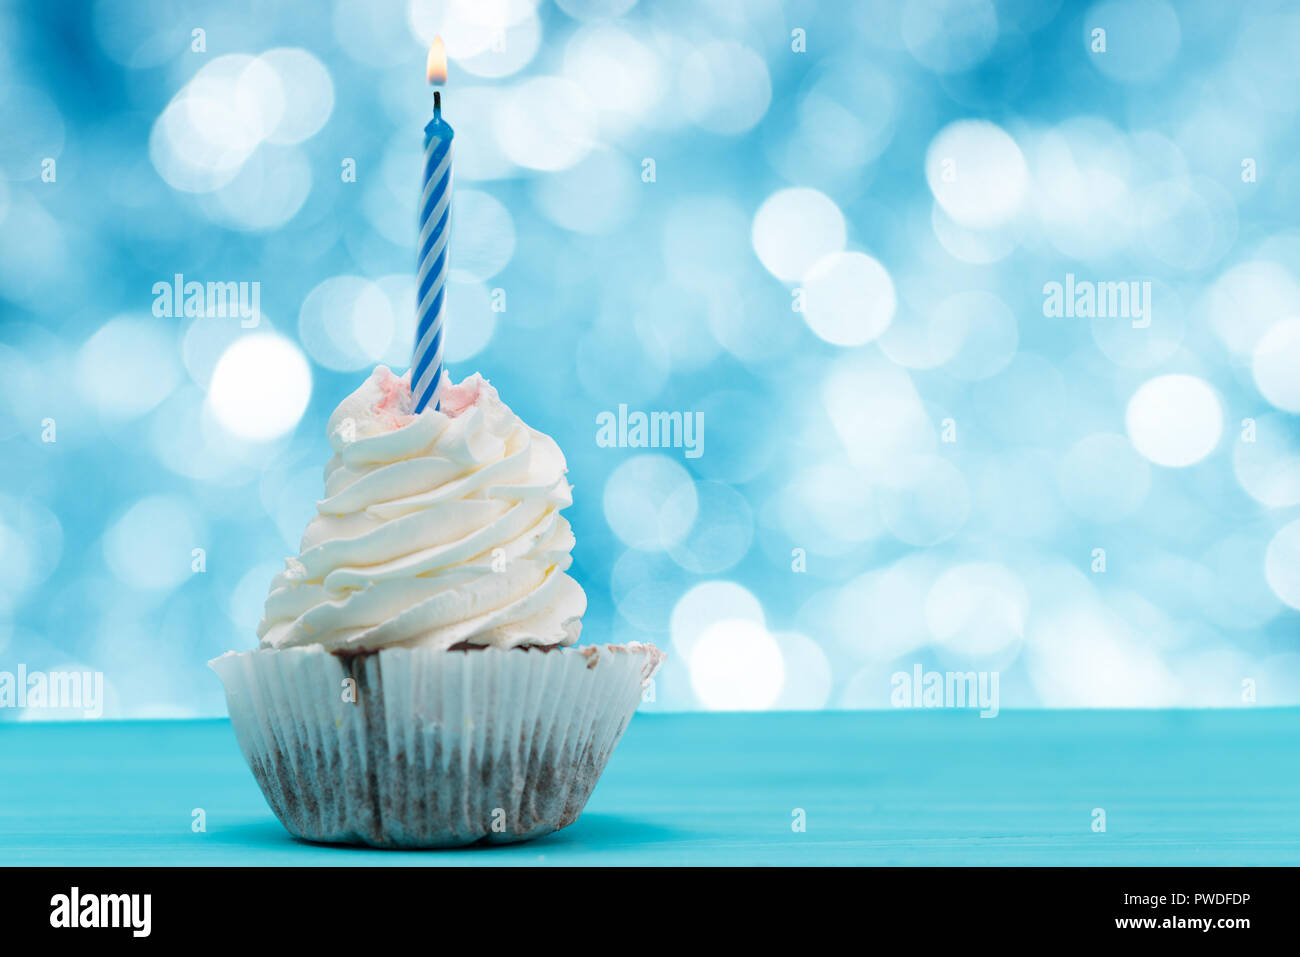 Cupcake with candle against a bokeh of sparkling party lights with copy space on a blue background - Stock Image